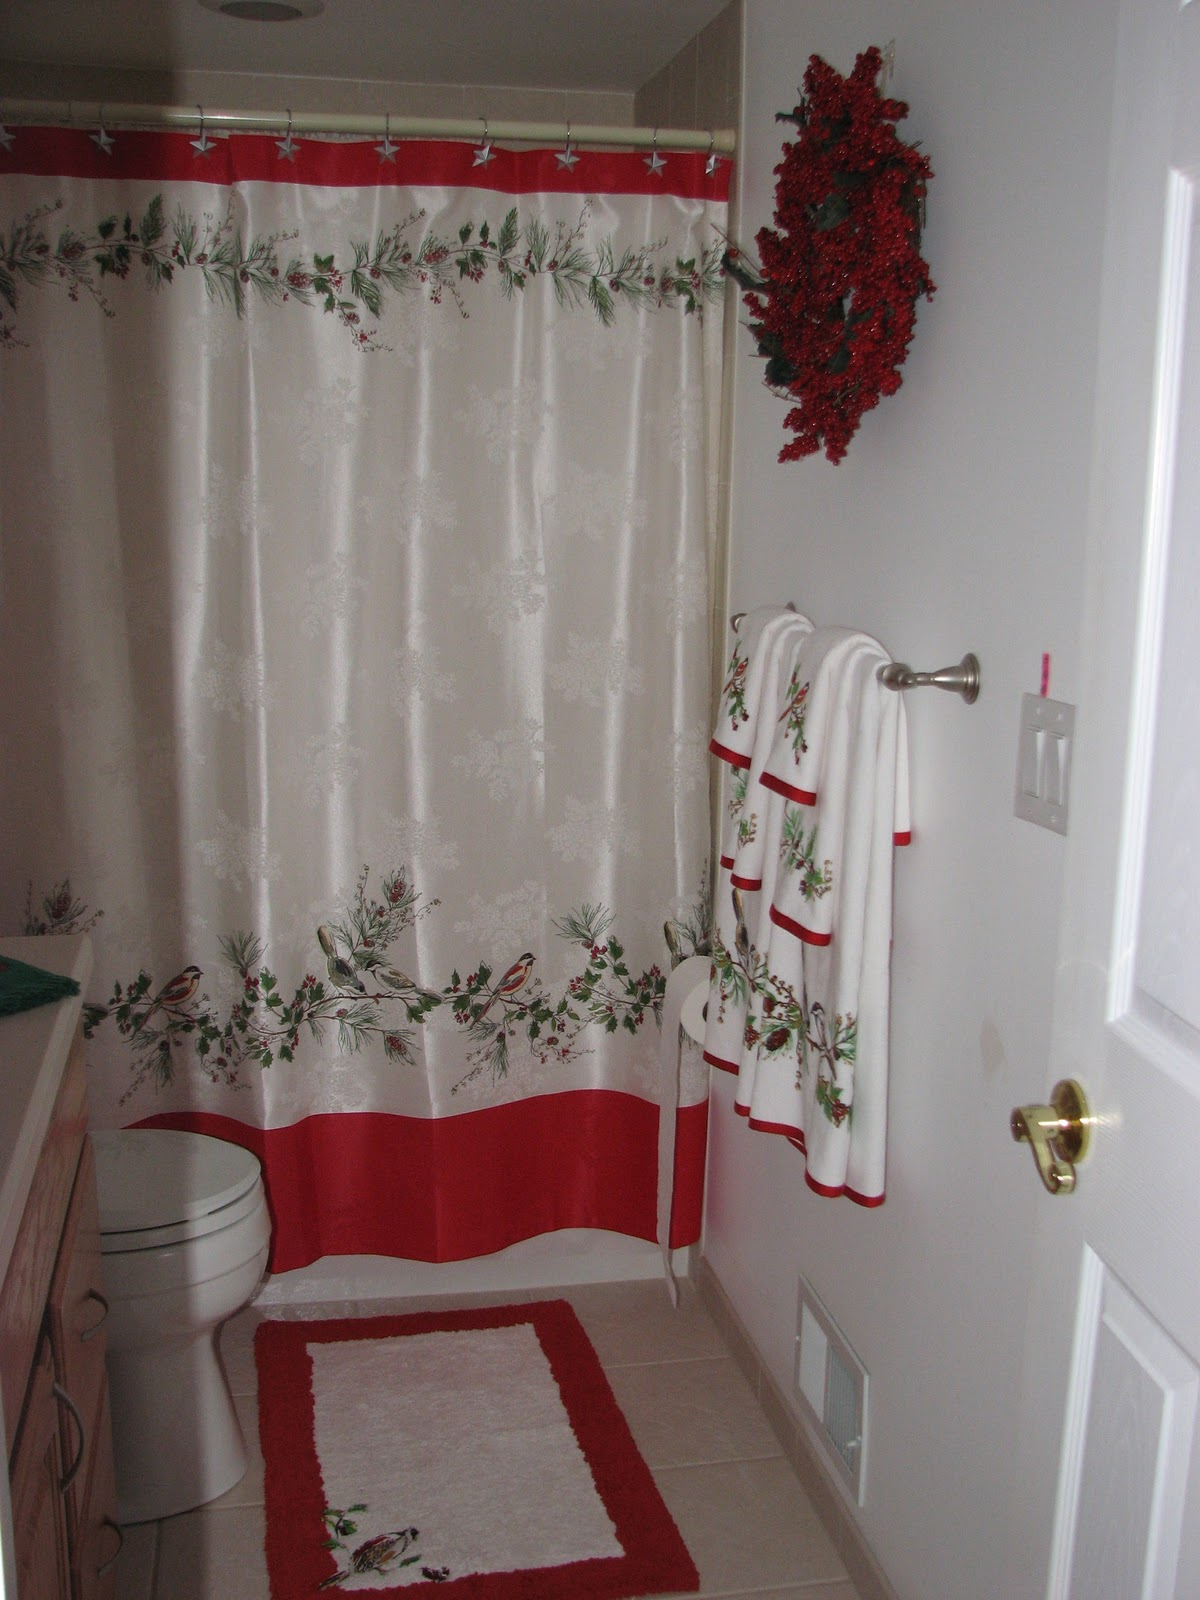 make sure to tell the grandkids not to use the towels hanging up  they are strictly for decoration   Use the hand towels set out on the bathroom sink. And So The Journey Begins  CHRISTMAS 2011